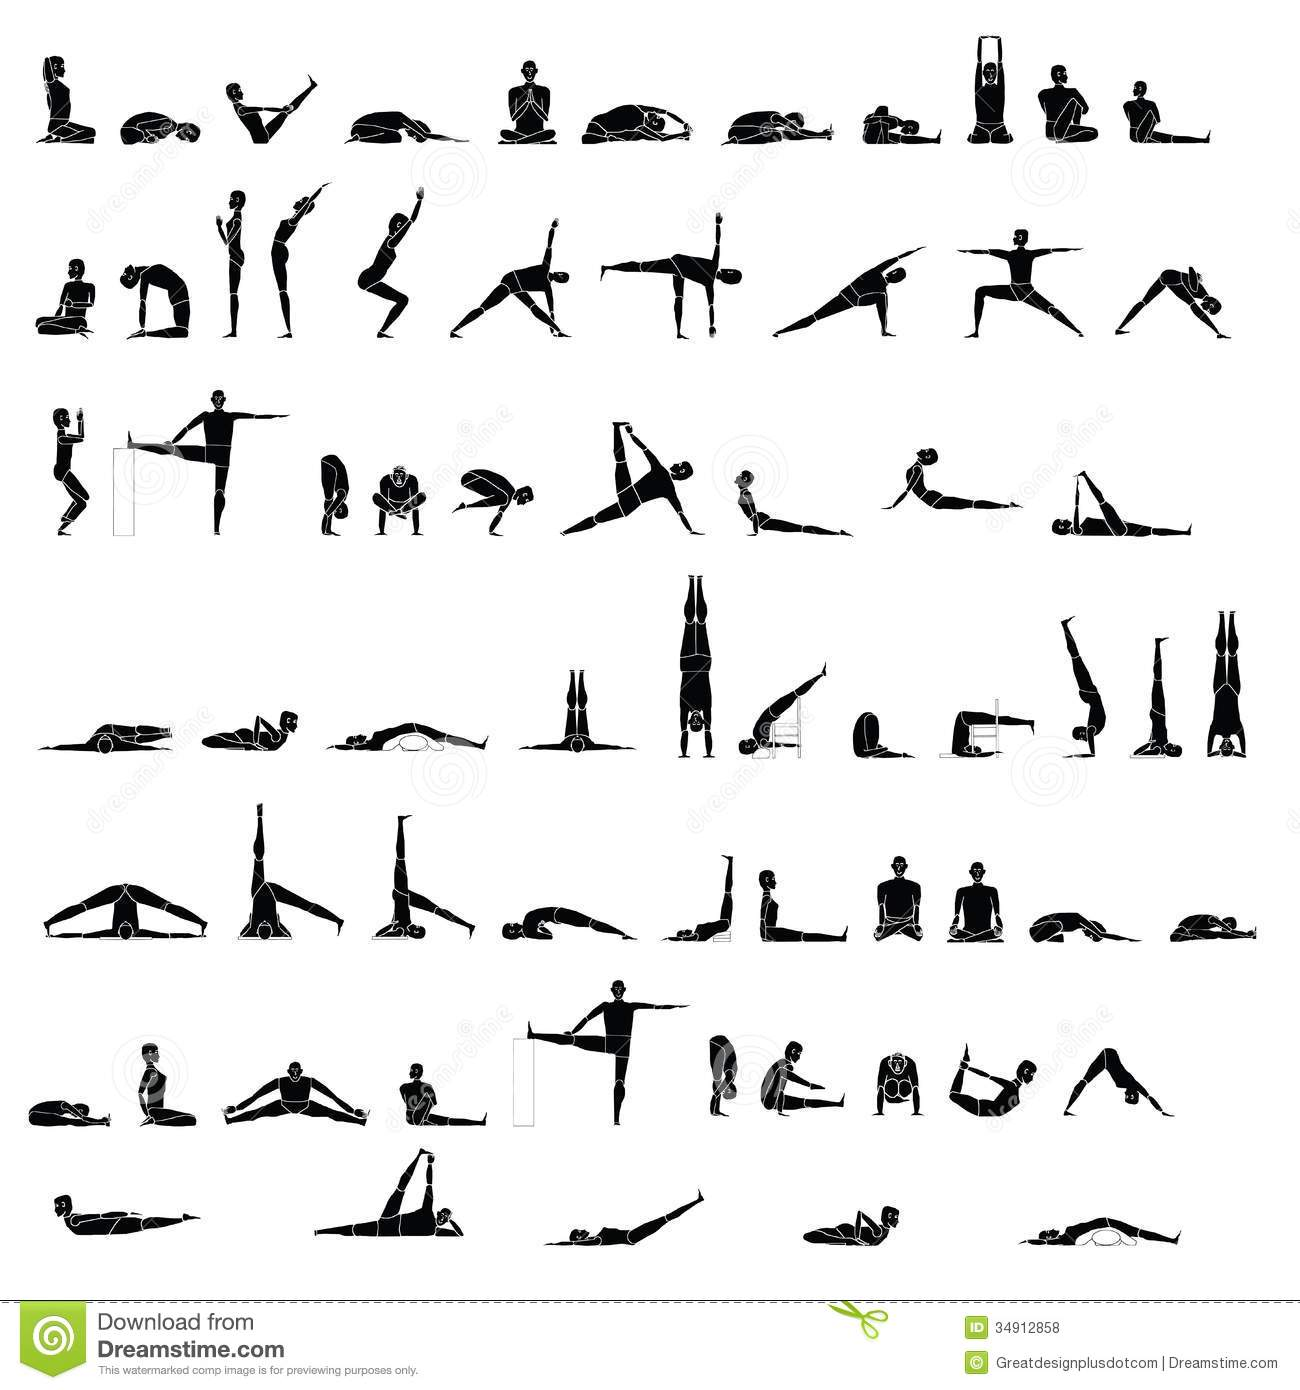 Various Yoga And Stretching Poses Royalty Free Stock